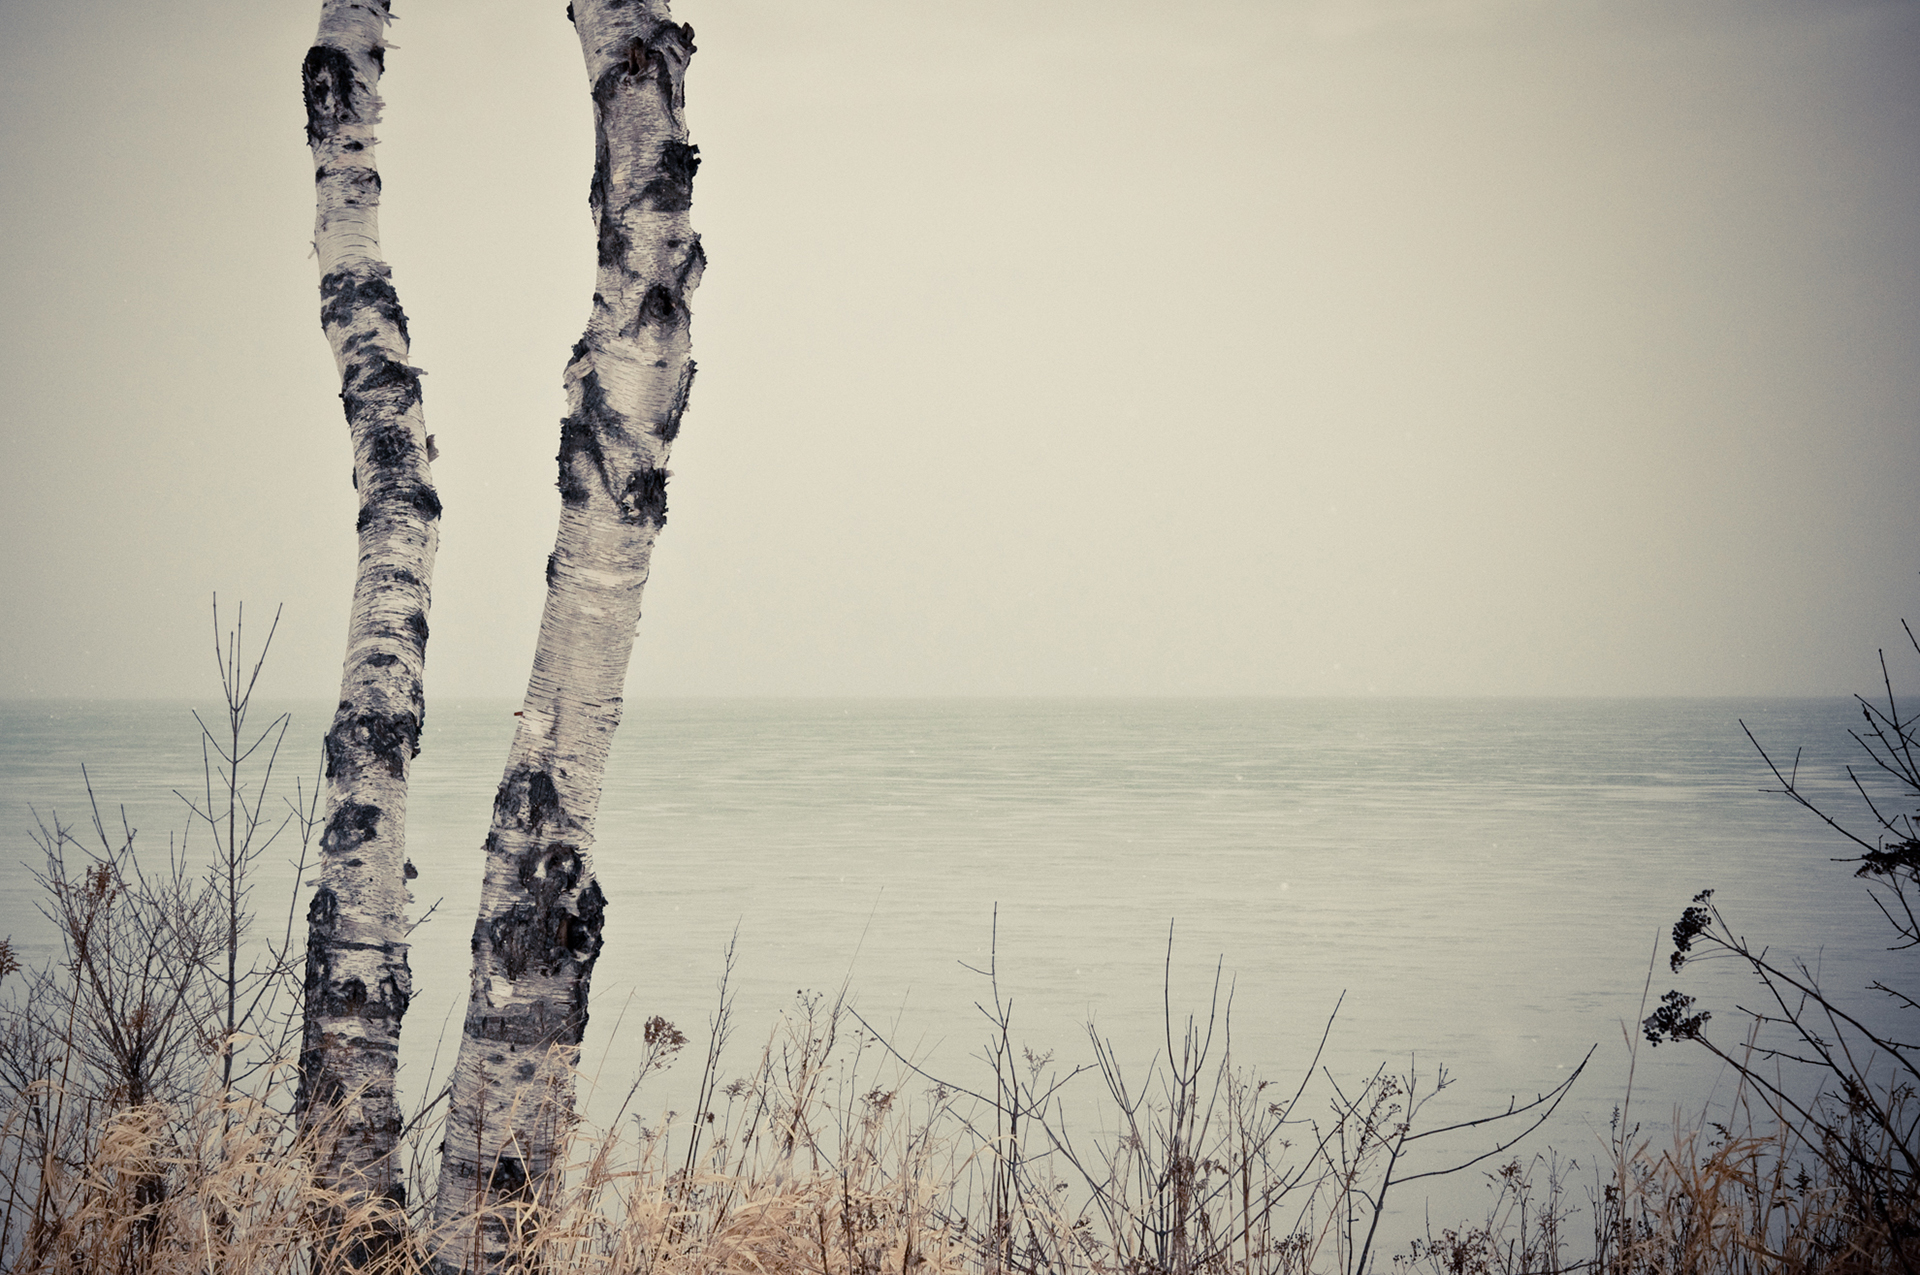 Lake Michigan - This is the song of Baby Birch